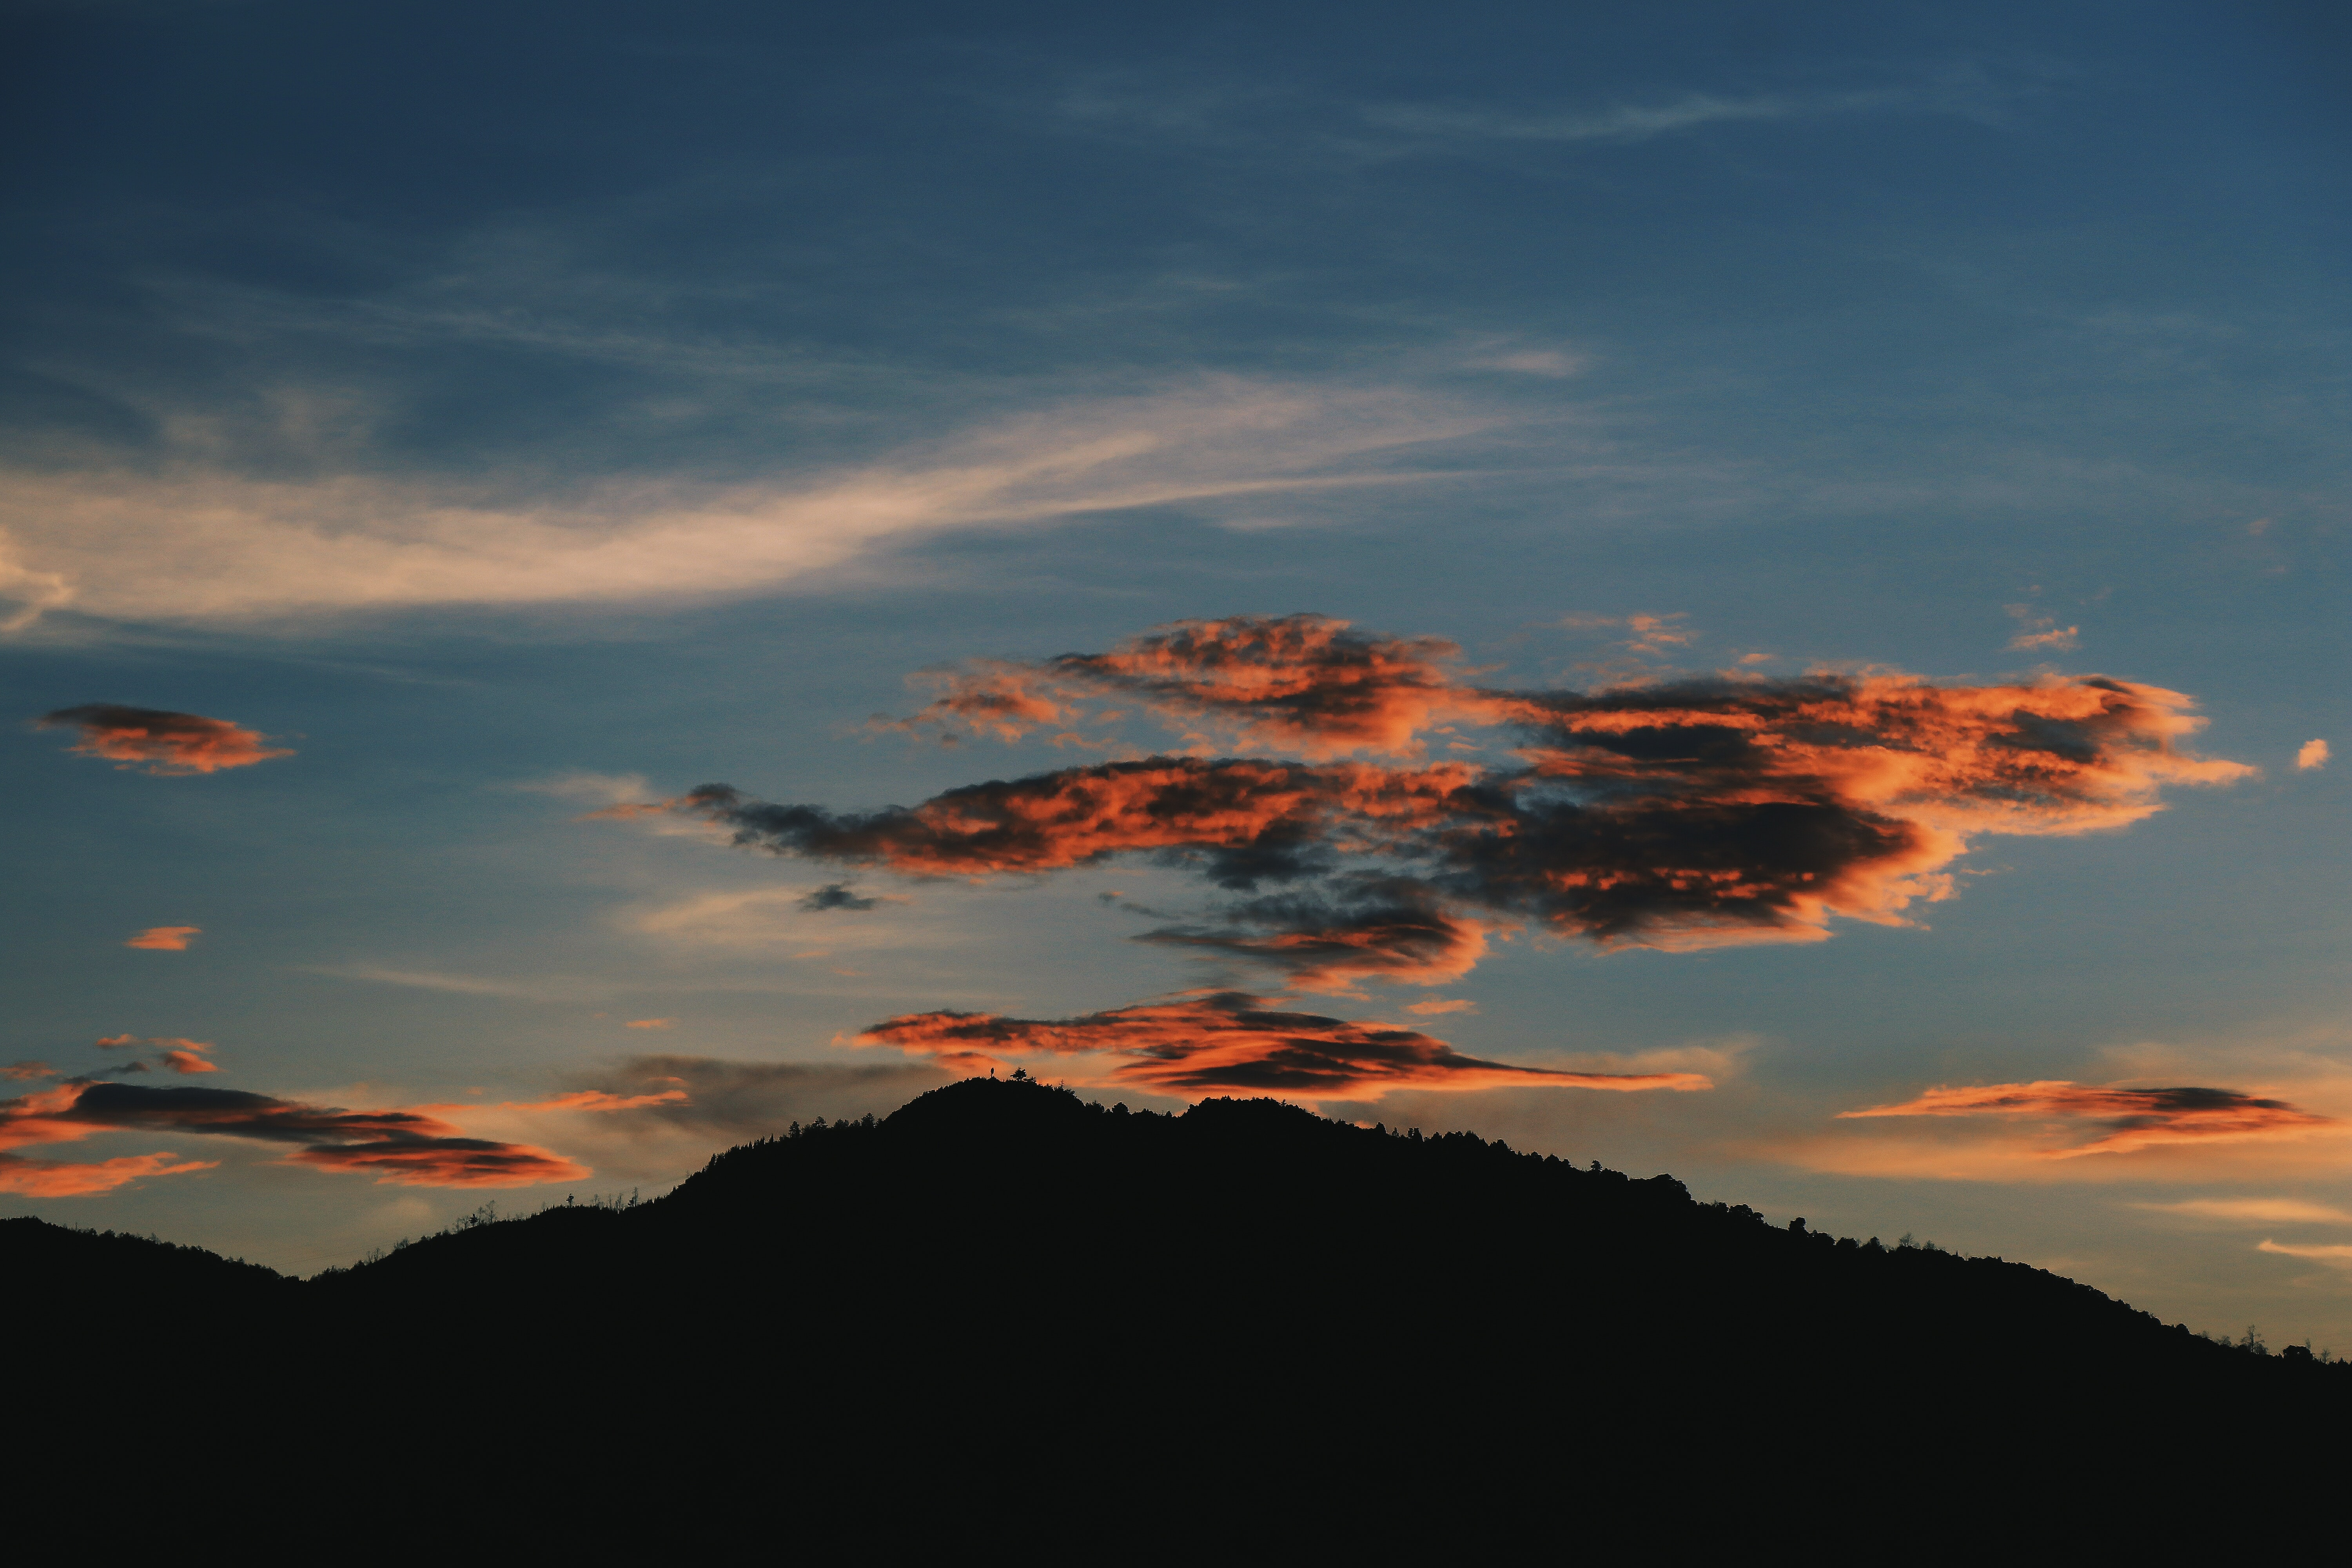 silhouette photography of mountain under nimbus clouds